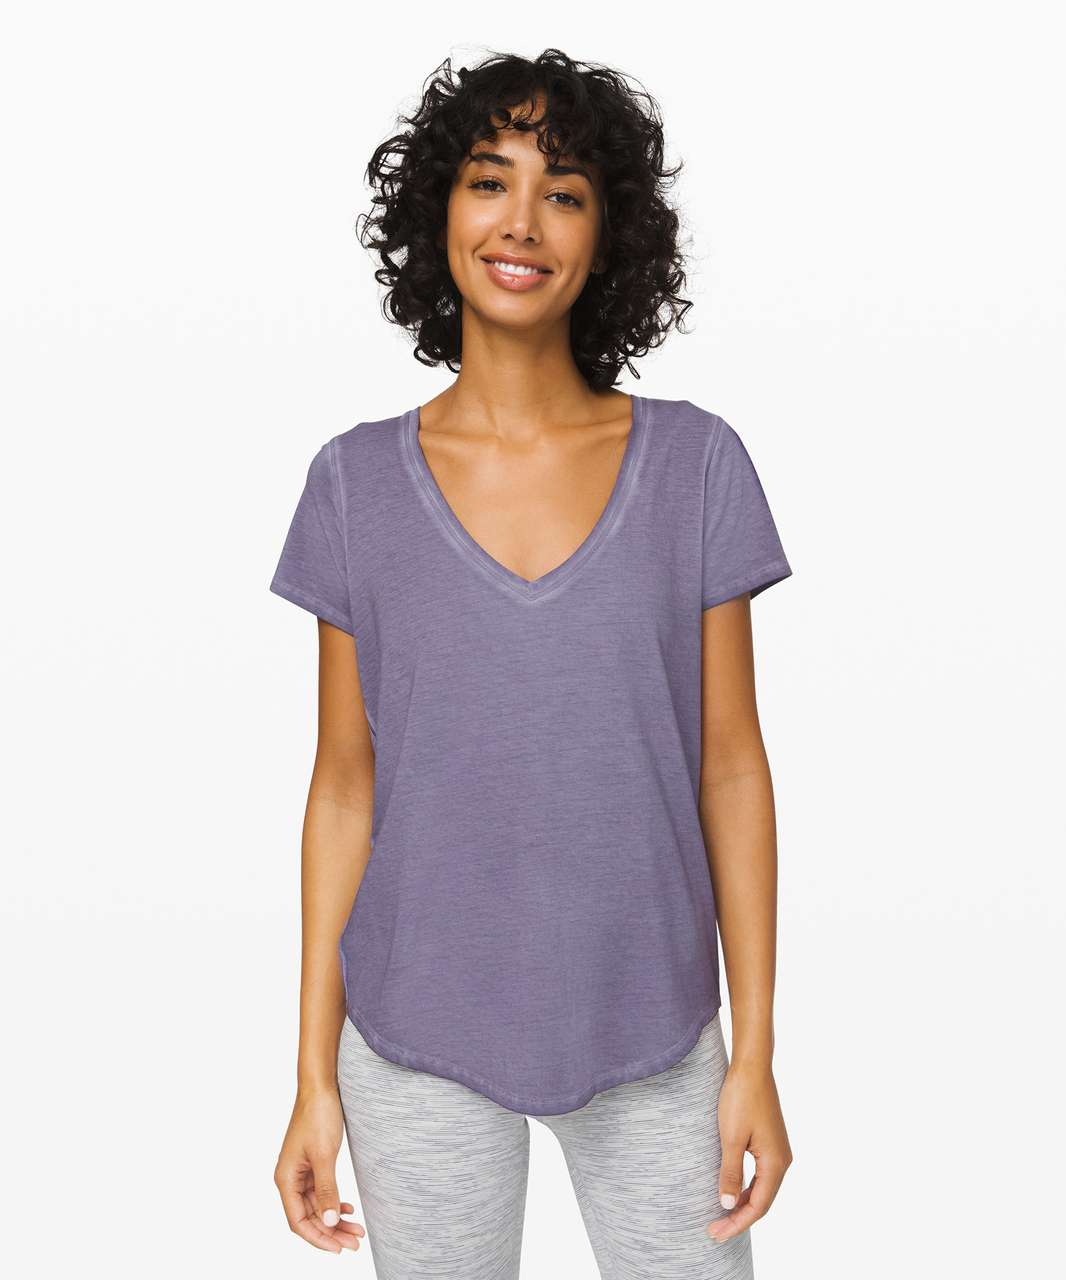 Lululemon Love Tee *Fade - Washed Purple Quartz